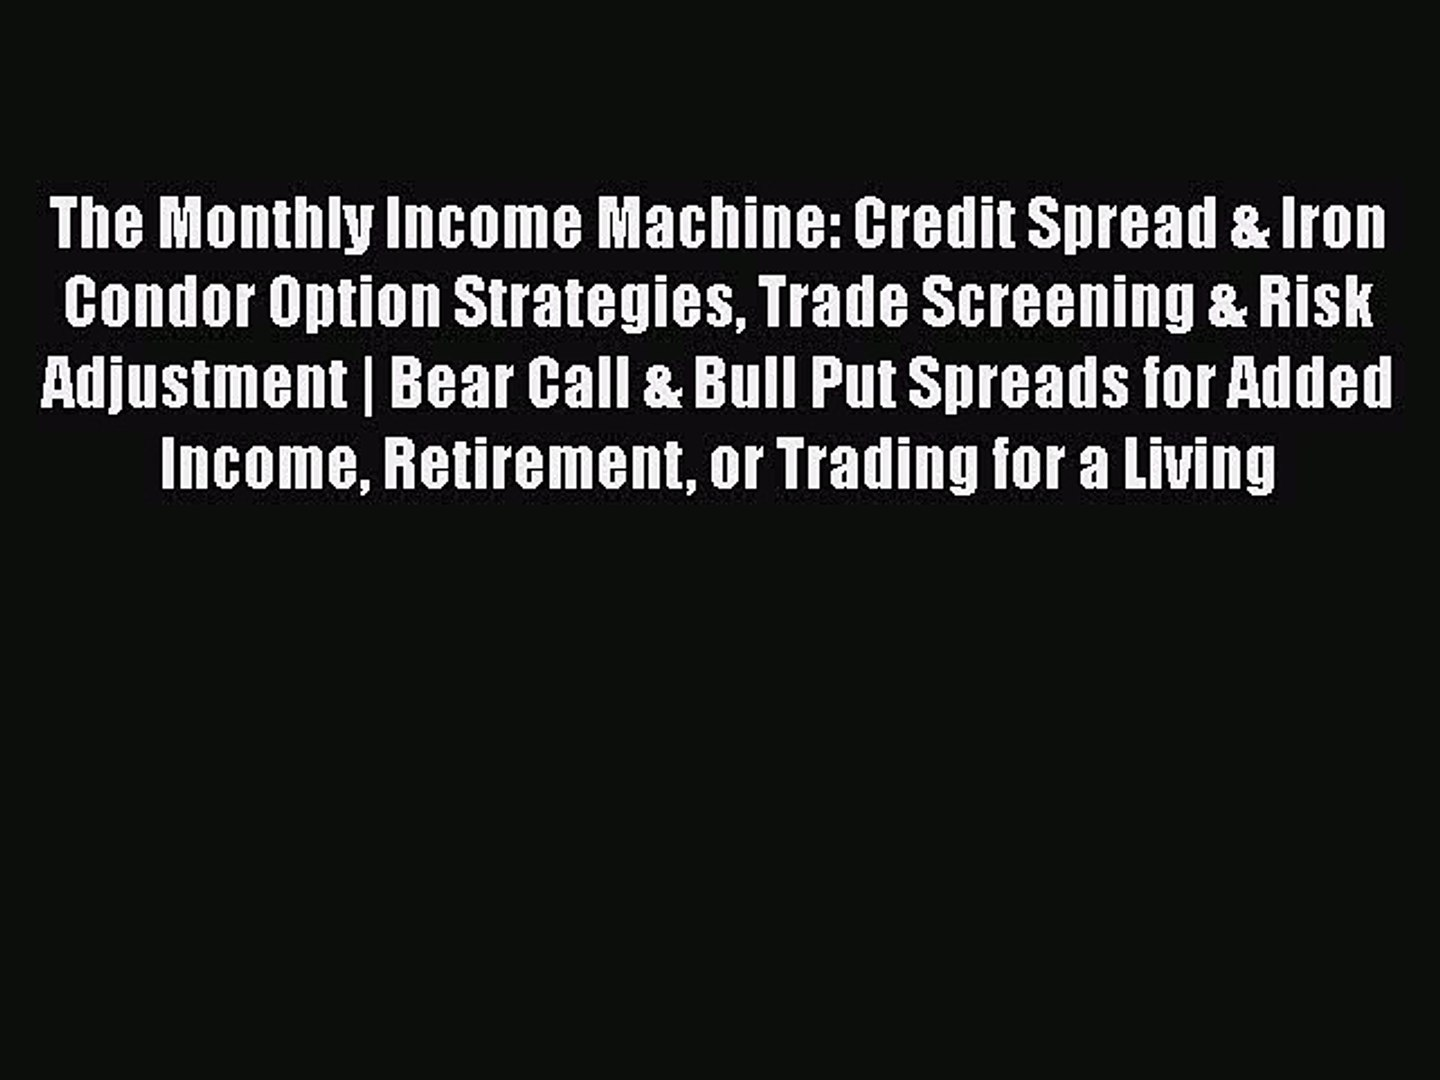 [Read book] The Monthly Income Machine: Credit Spread & Iron Condor Option  Strategies Trade